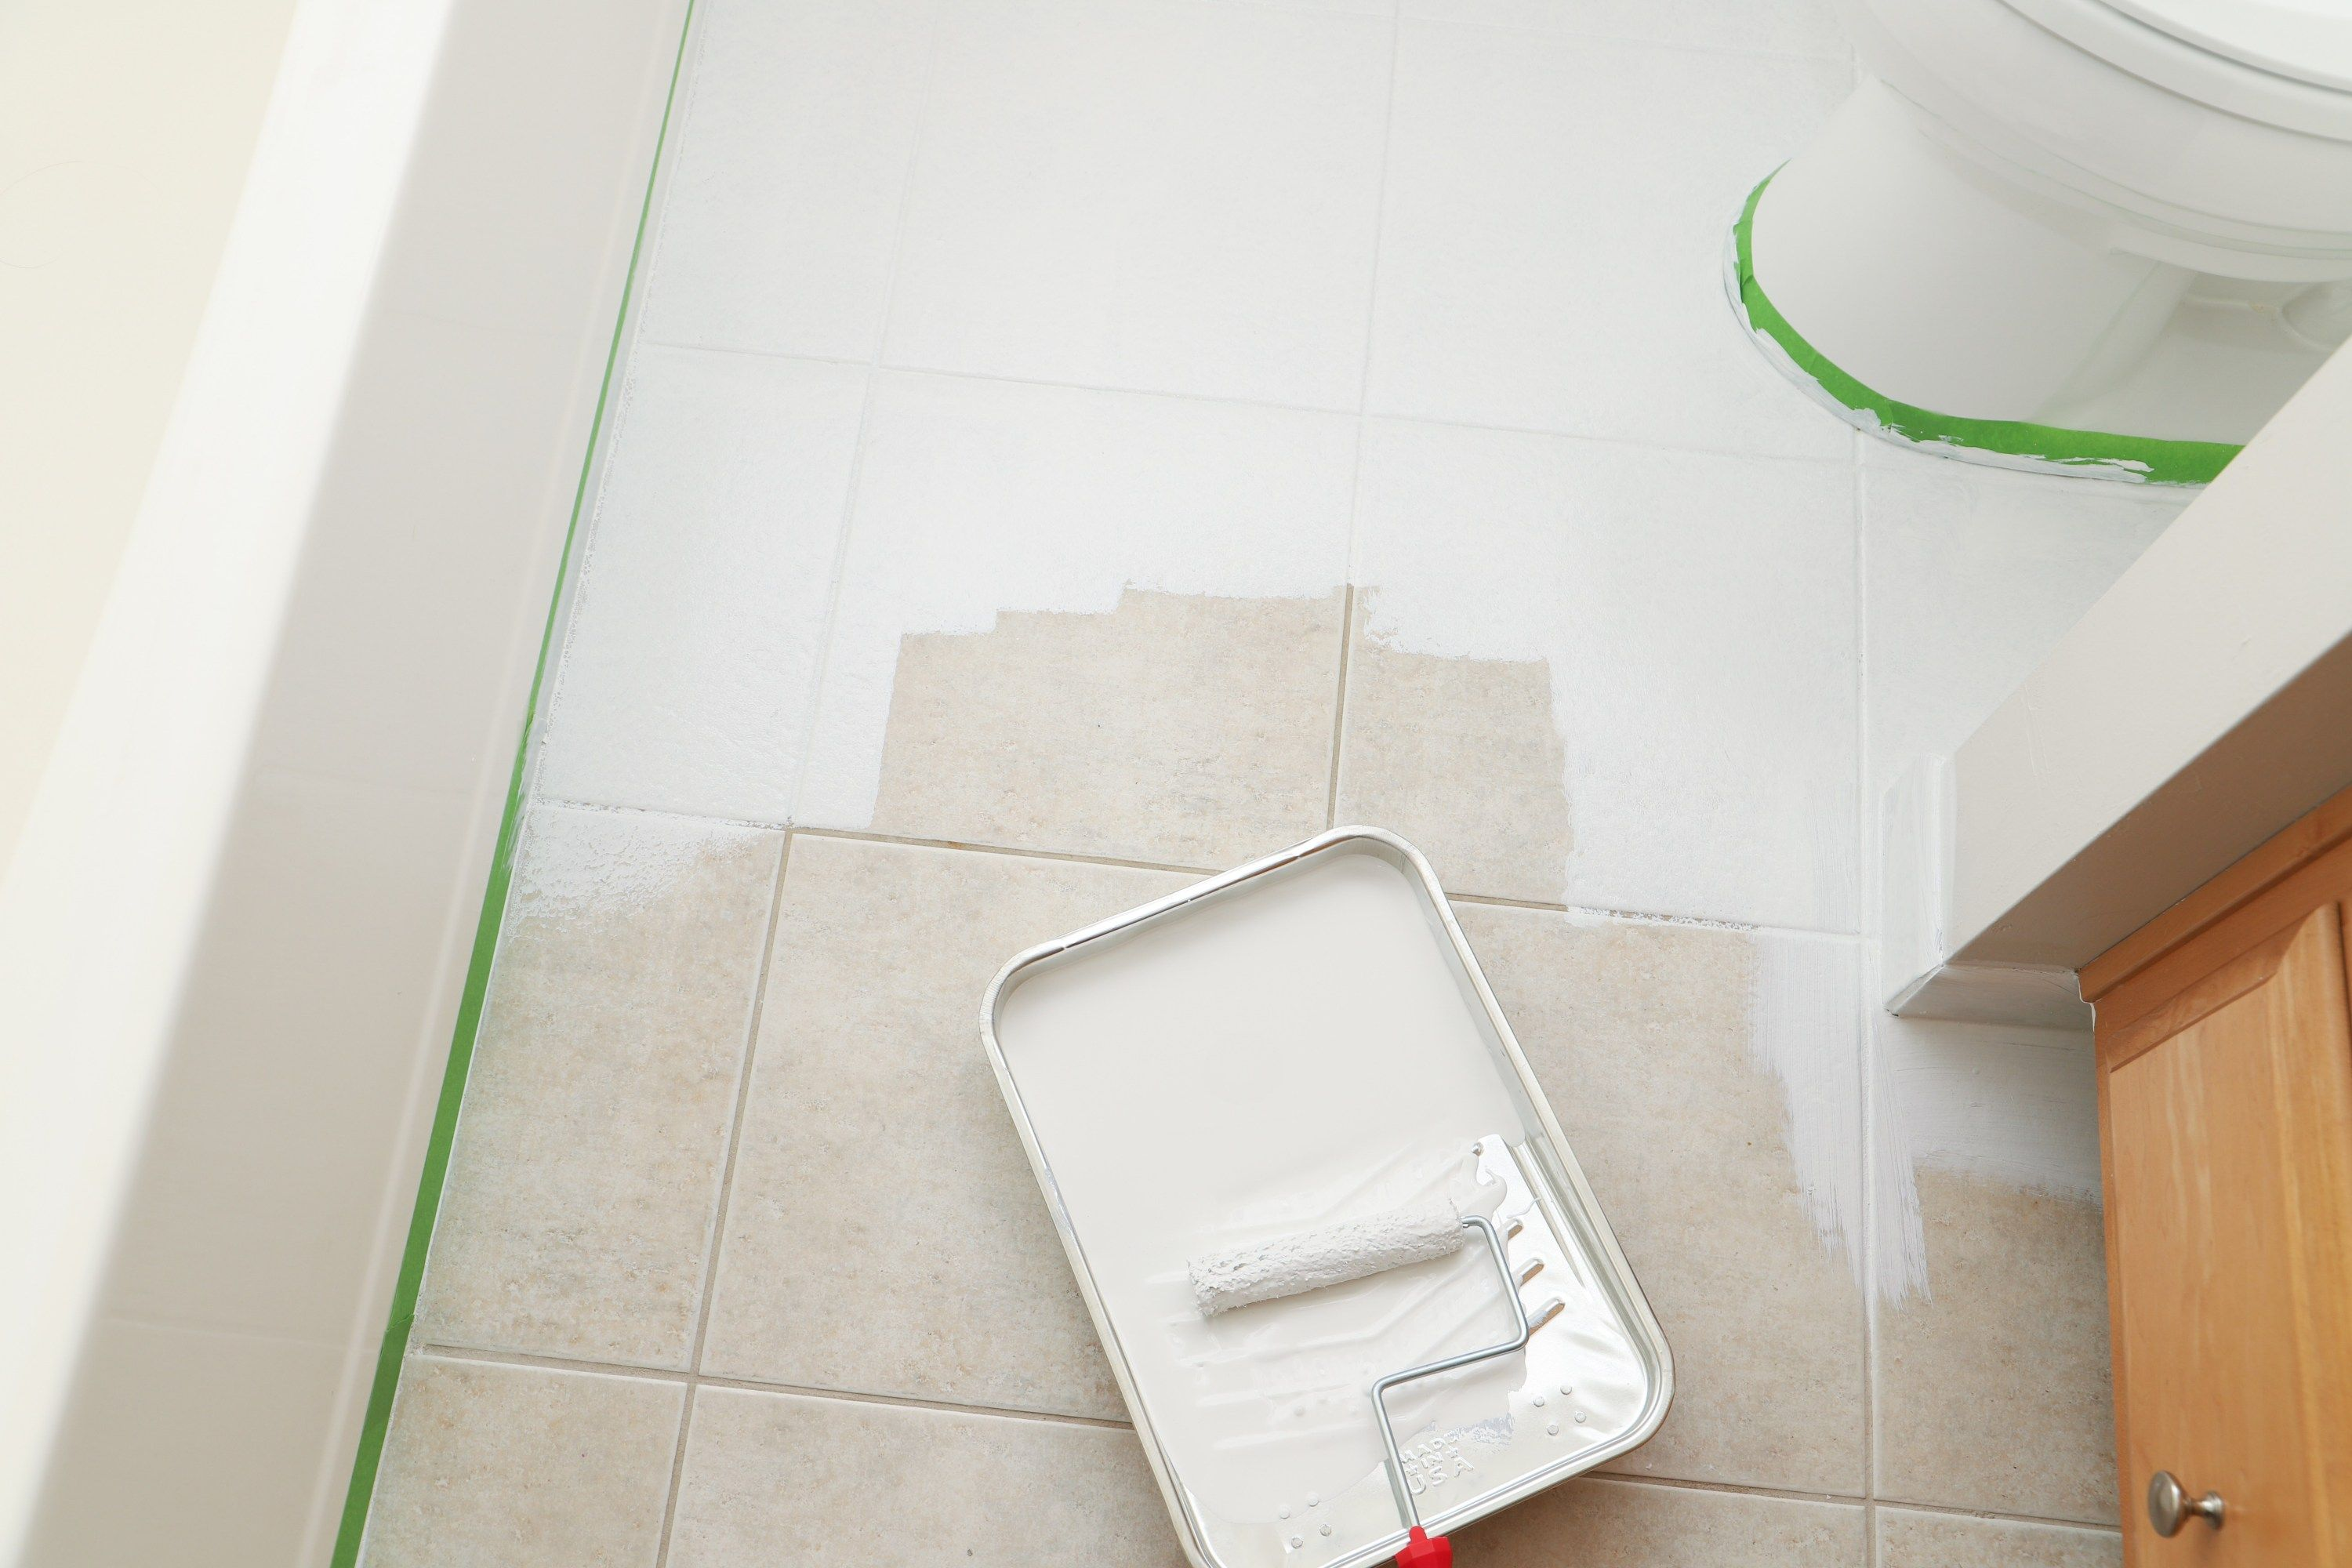 Taping Off Edges For Transformation Of Outdated Tile With Gray And White Rust Oleum Paint Painting Tile Floors Painting Tile Tile Floor Diy